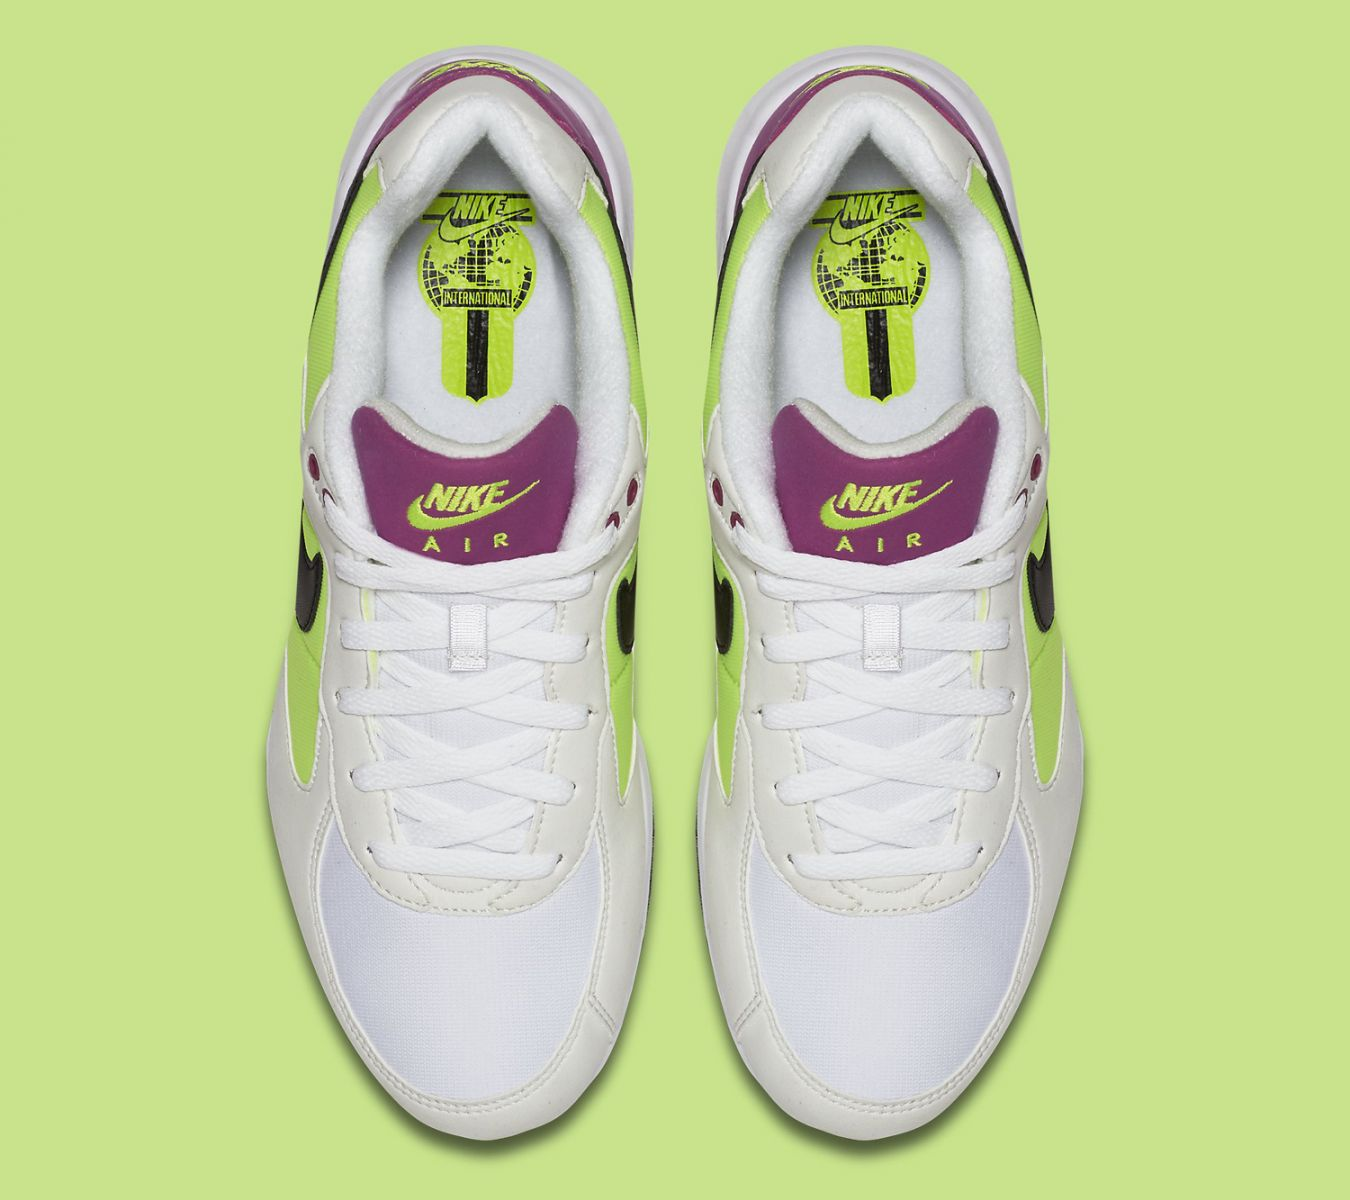 Another Original Nike Air Icarus Comes